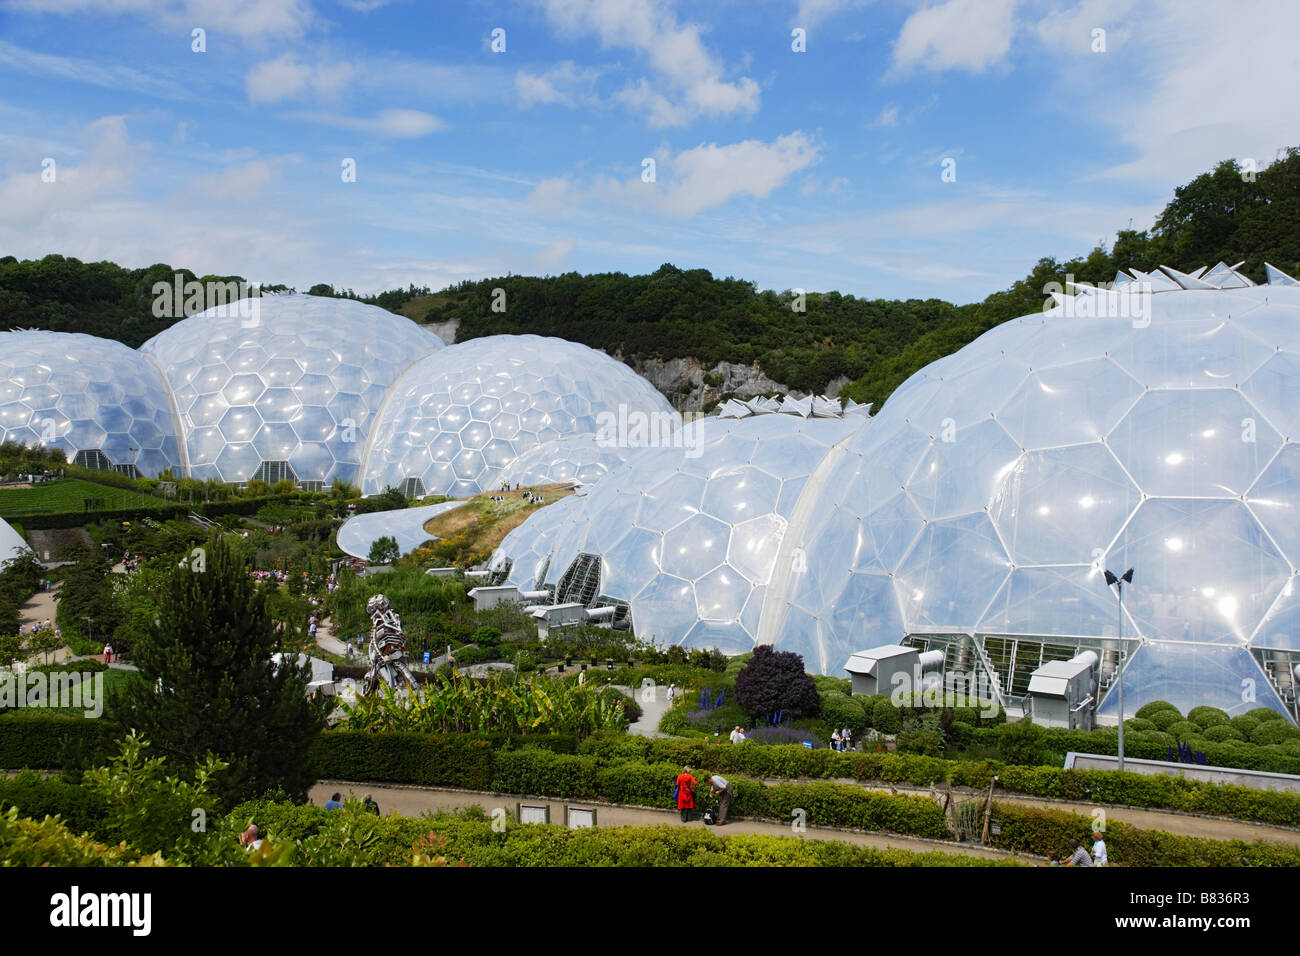 Eden Project Bodelva Cornwall England United Kingdom - Stock Image